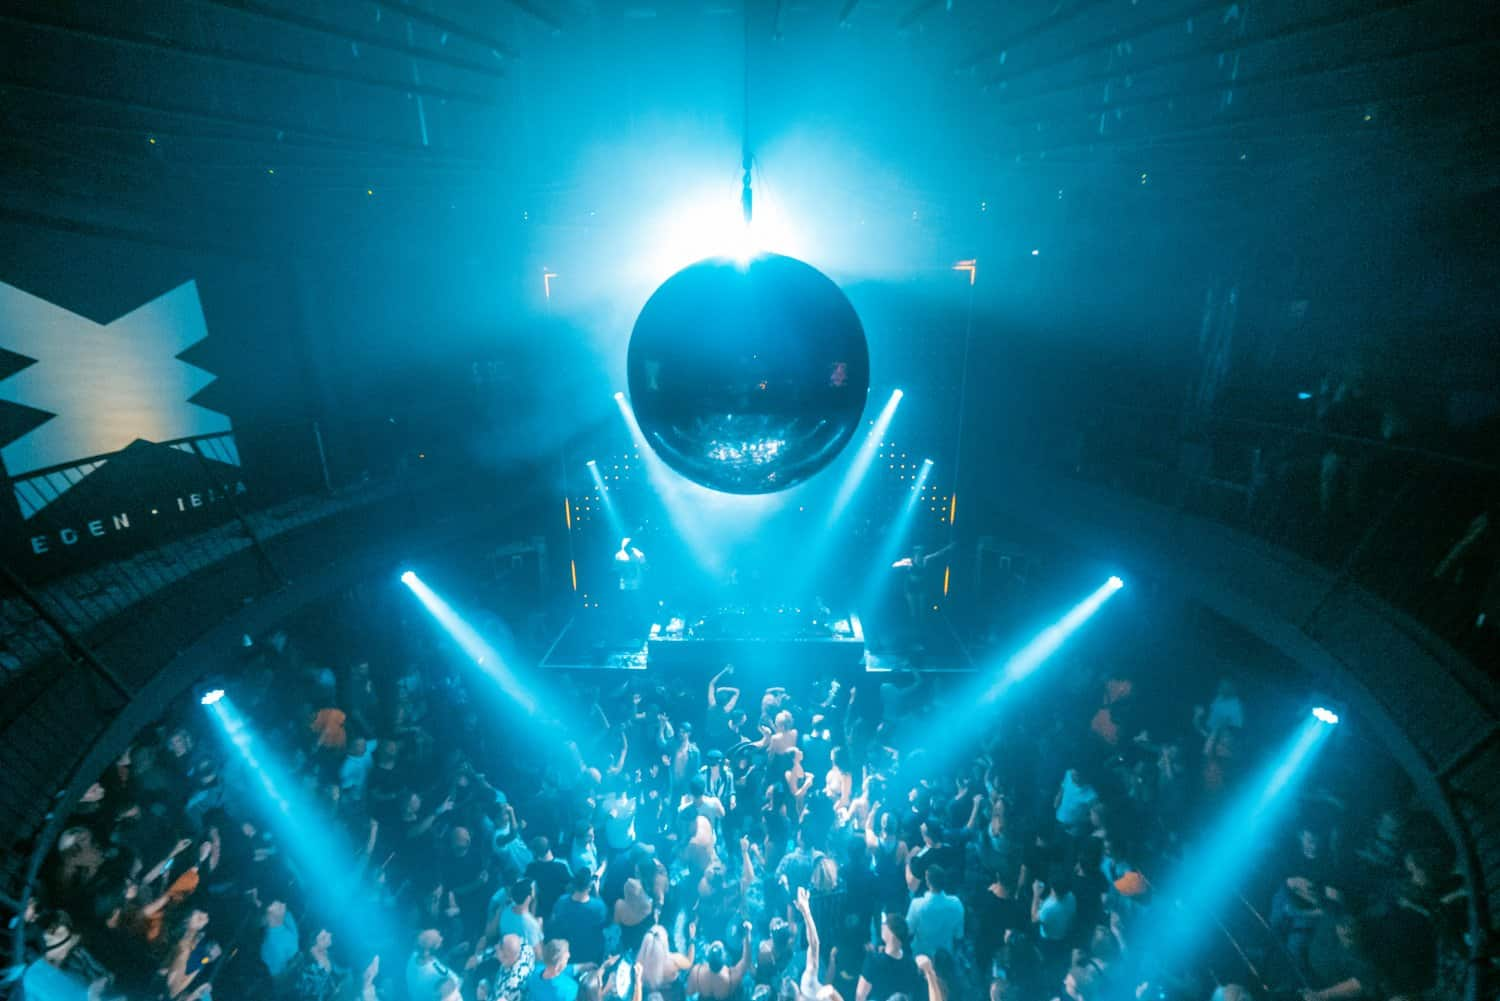 Terminal 4 Presents Tronic Ibiza 2020 - Tickets, Events and Lineup 3